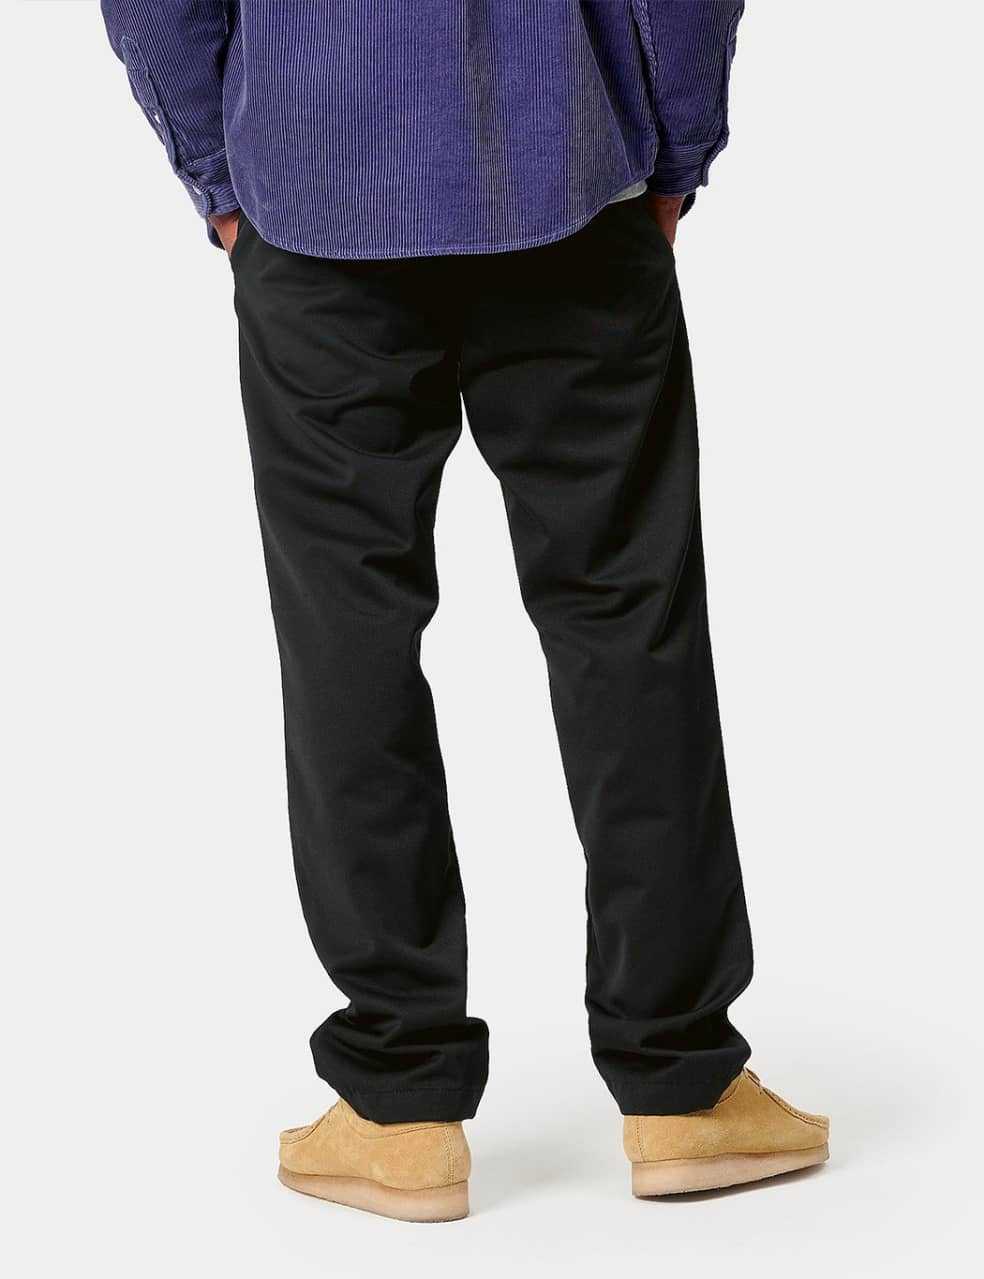 Carhartt-WIP Master Pant (Denison Twill, 8.8 oz) - Black rinsed   Trousers by Carhartt WIP 3